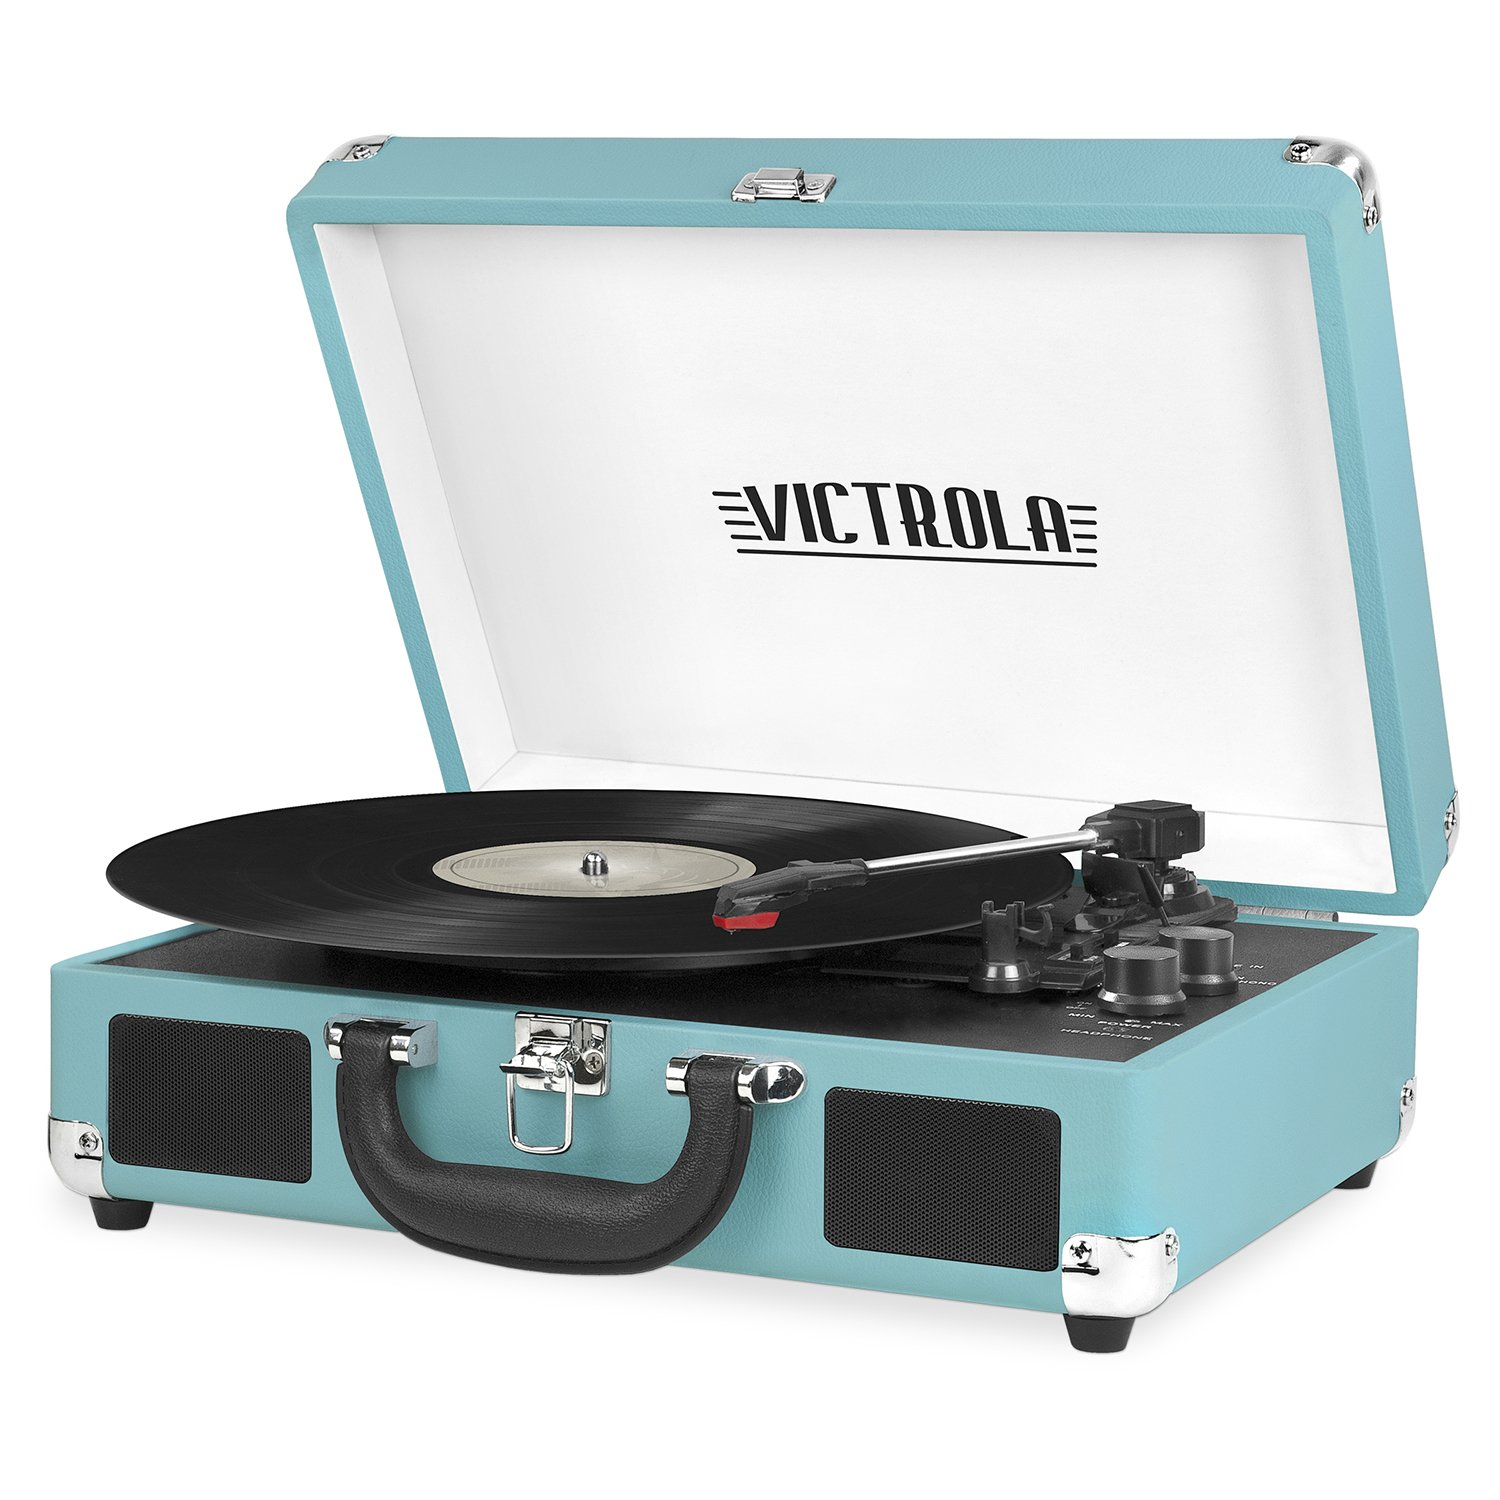 Victrola Vintage 3-Speed Bluetooth Suitcase Turntable with Speakers, Aqua Turquoise by Victrola